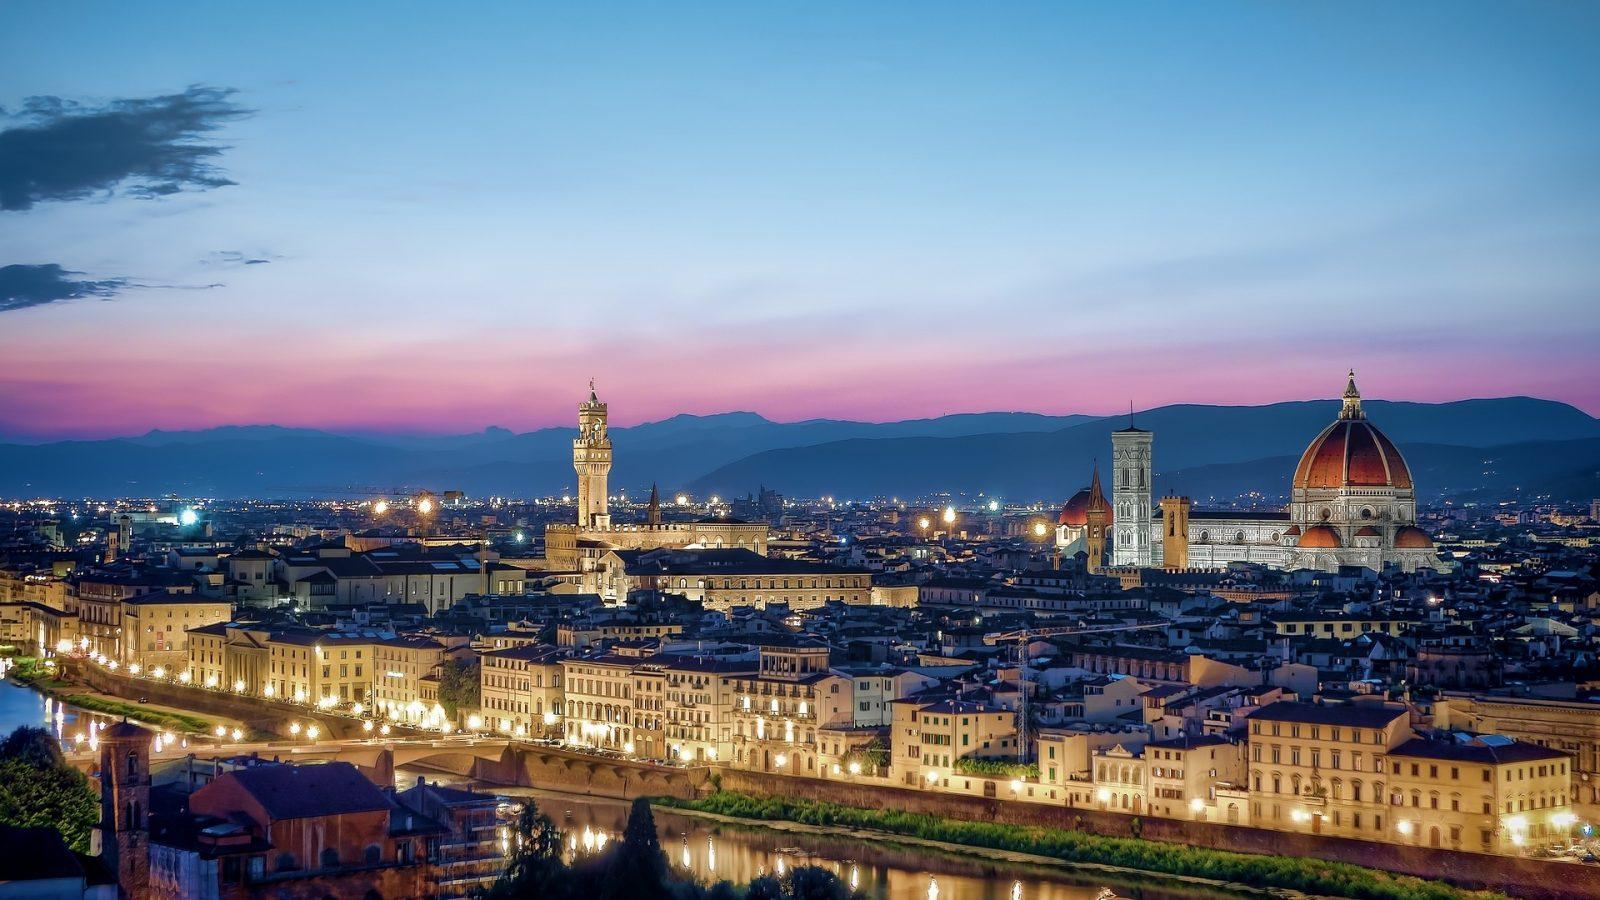 Staying in Italy: Explore the World-Class Art and Culture of Florence